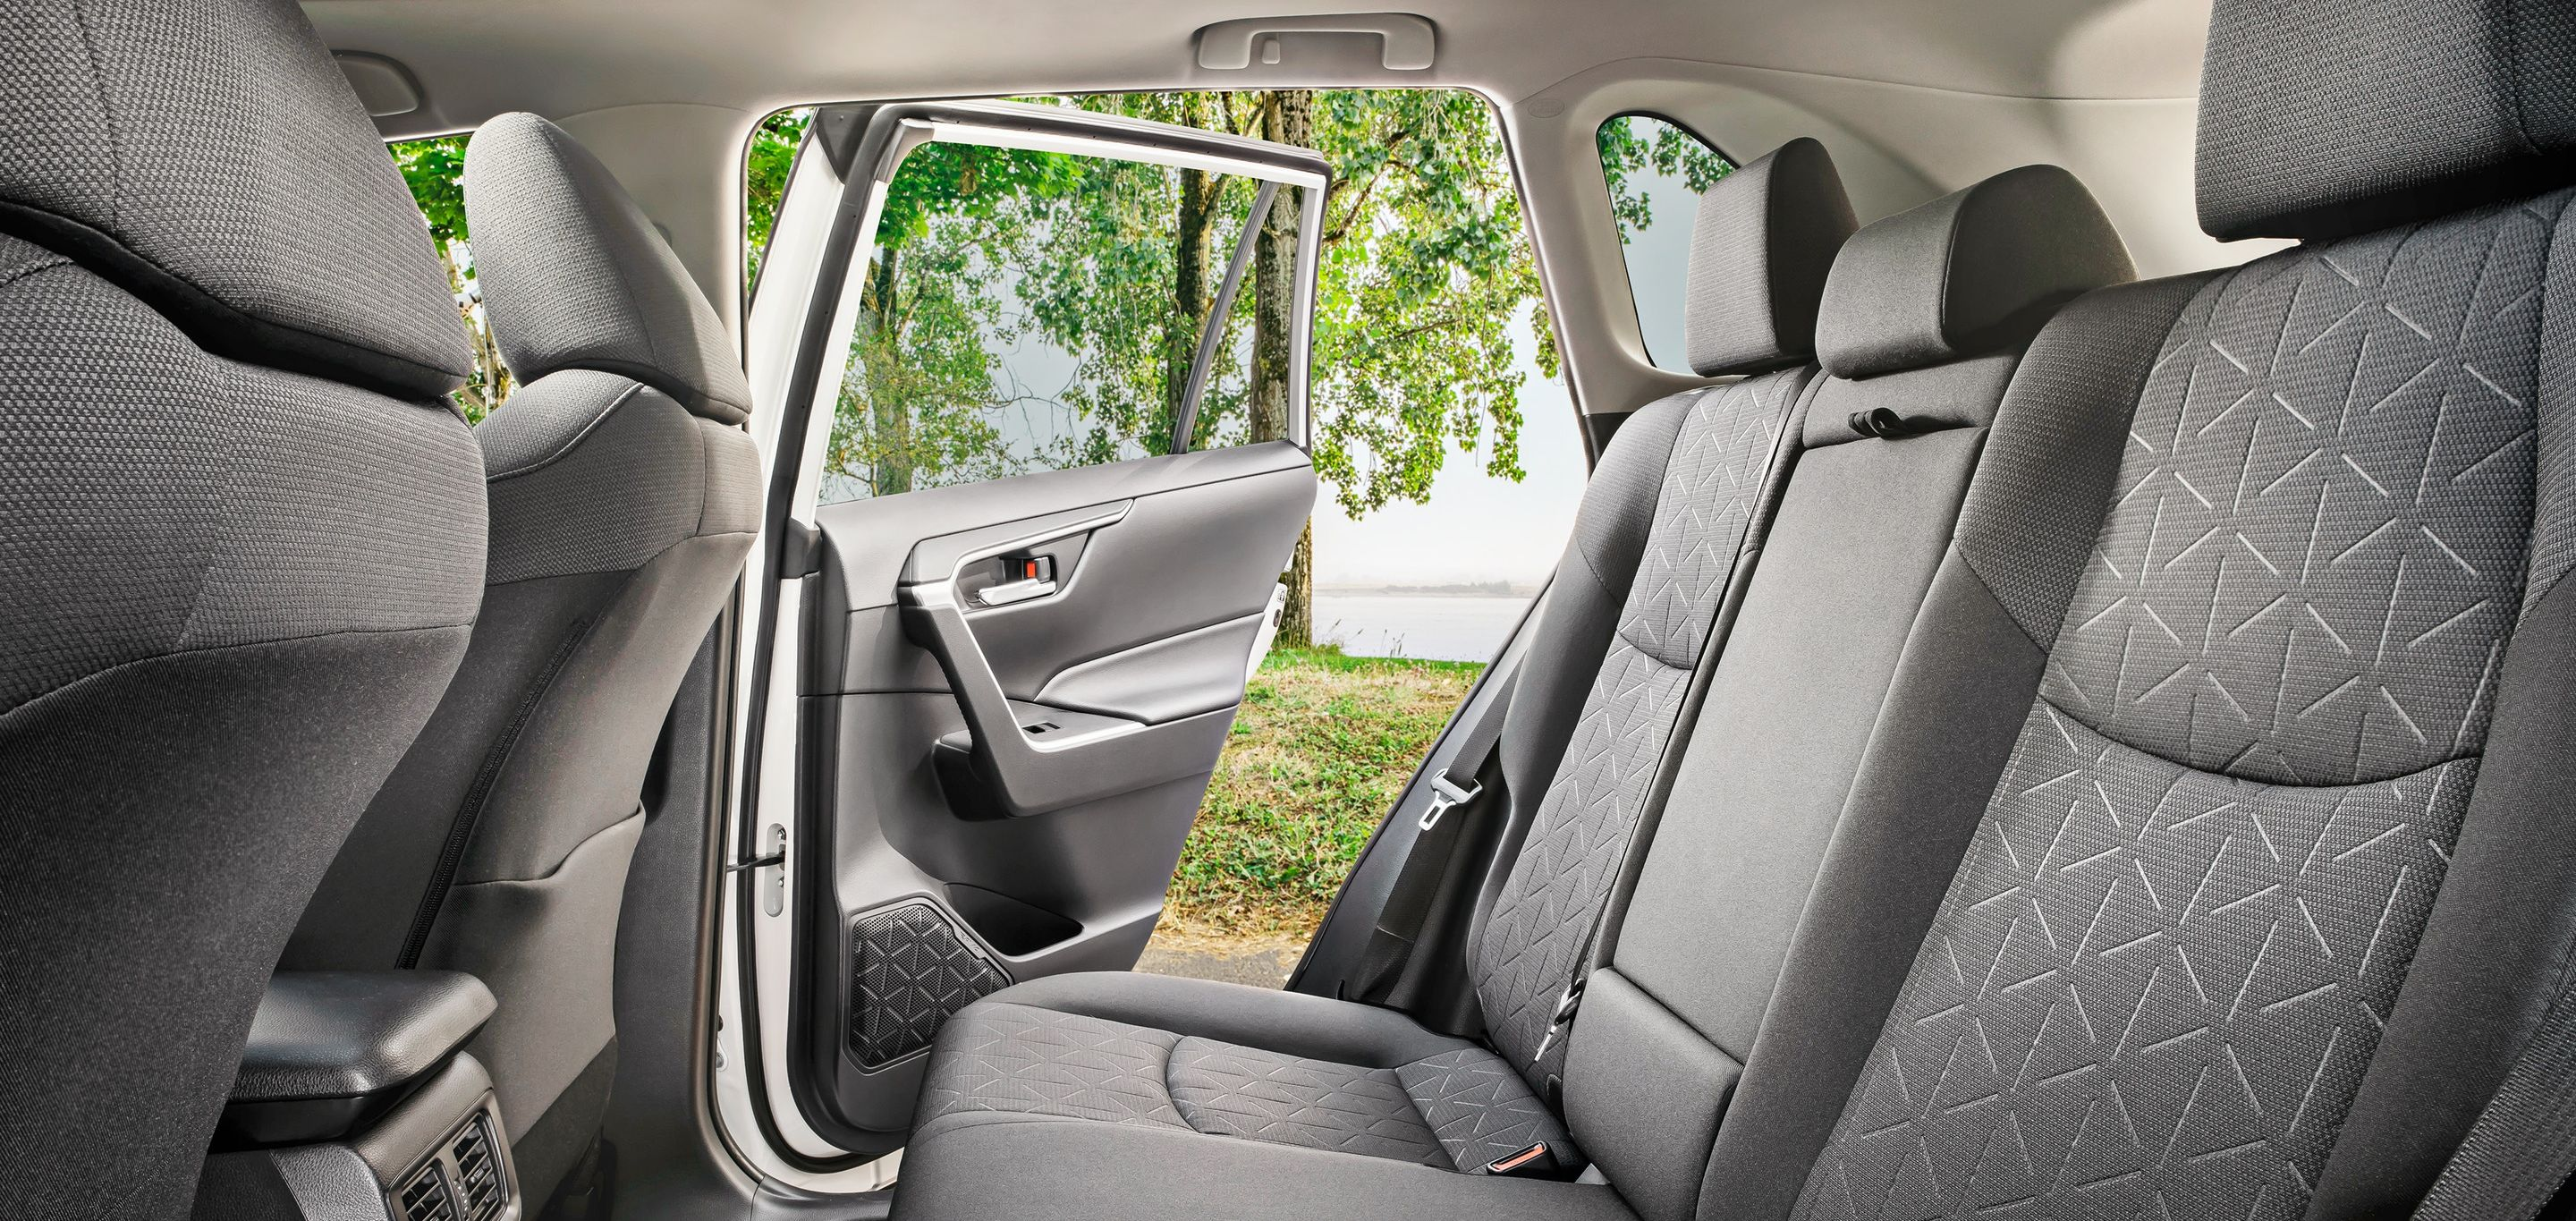 Plenty of Room in the 2019 Toyota RAV4!